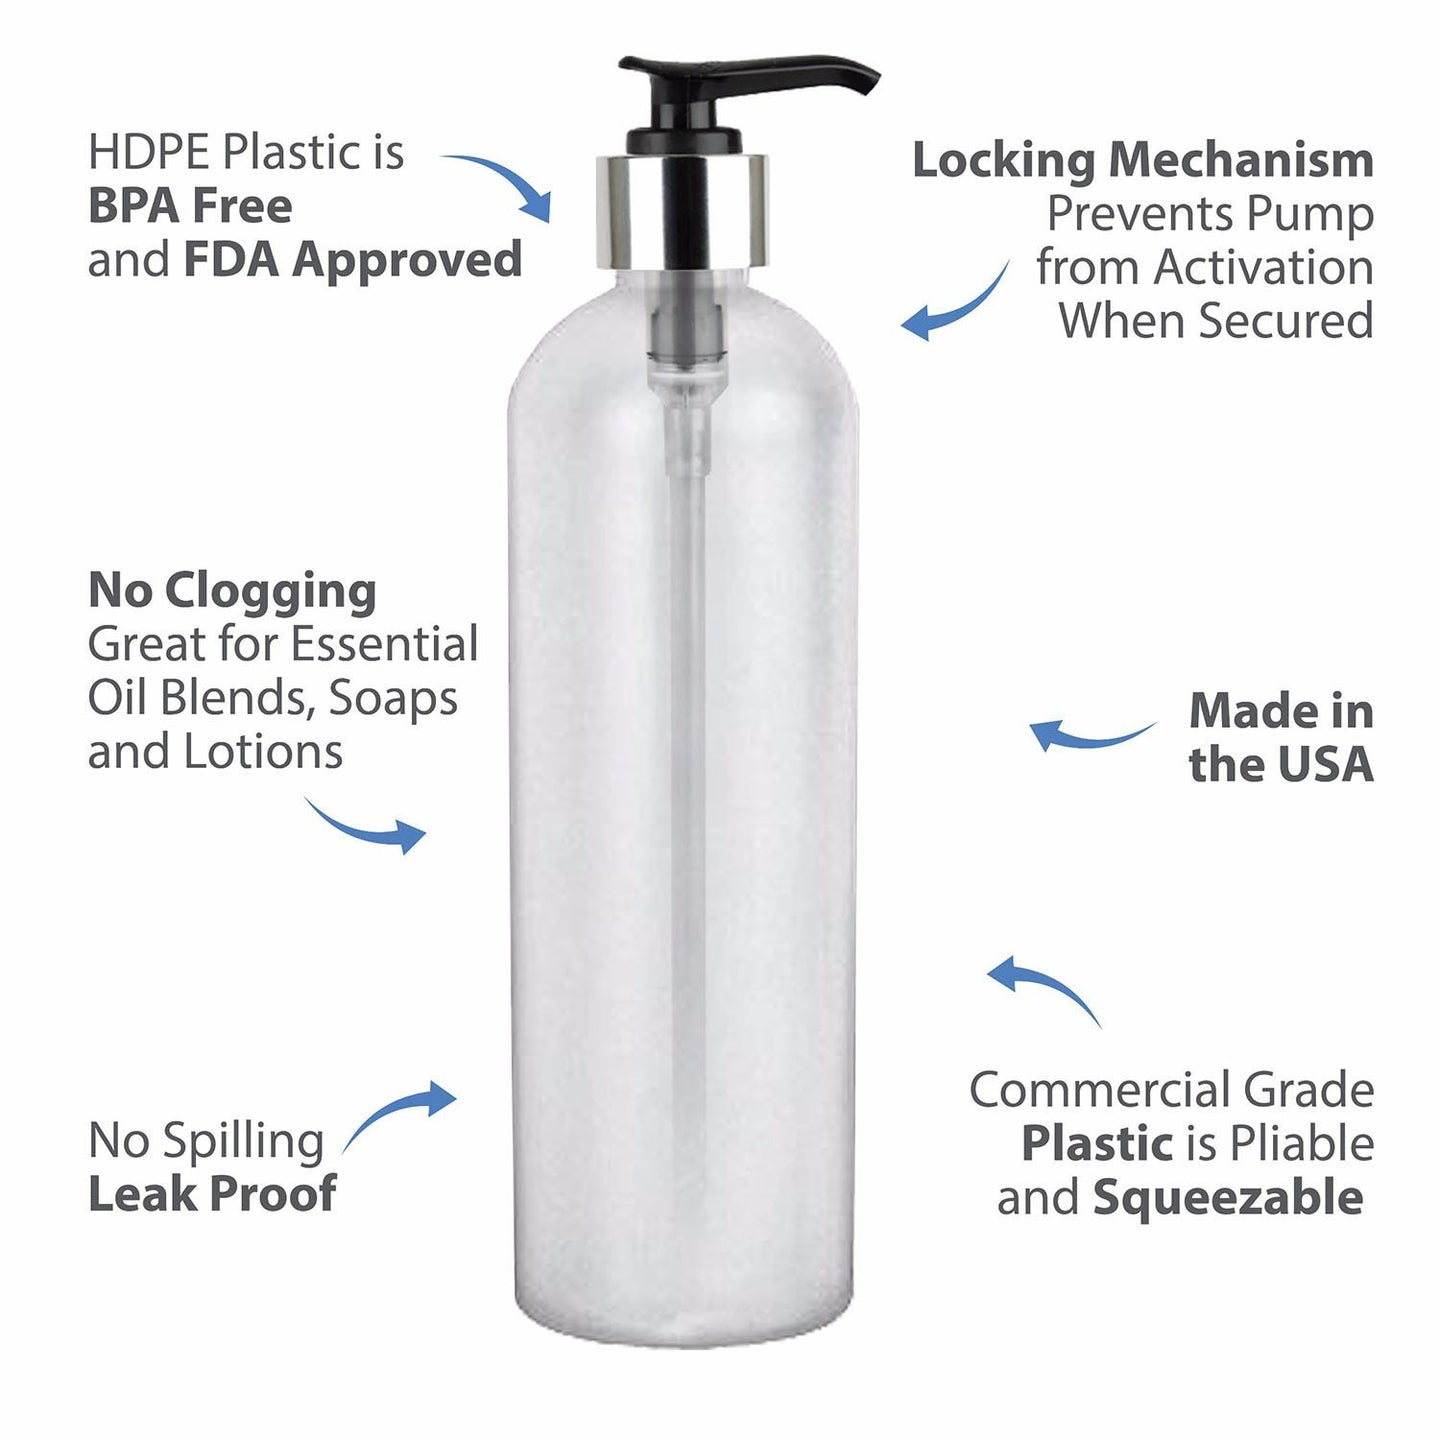 MoYo Natural Labs 16 oz Pump Dispenser, Empty Soap and Lotion Bottle with Locking Cap, BPA Free HDPE Plastic Containers for Essential Oils/Liquids (Pack of 30, Translucent White)